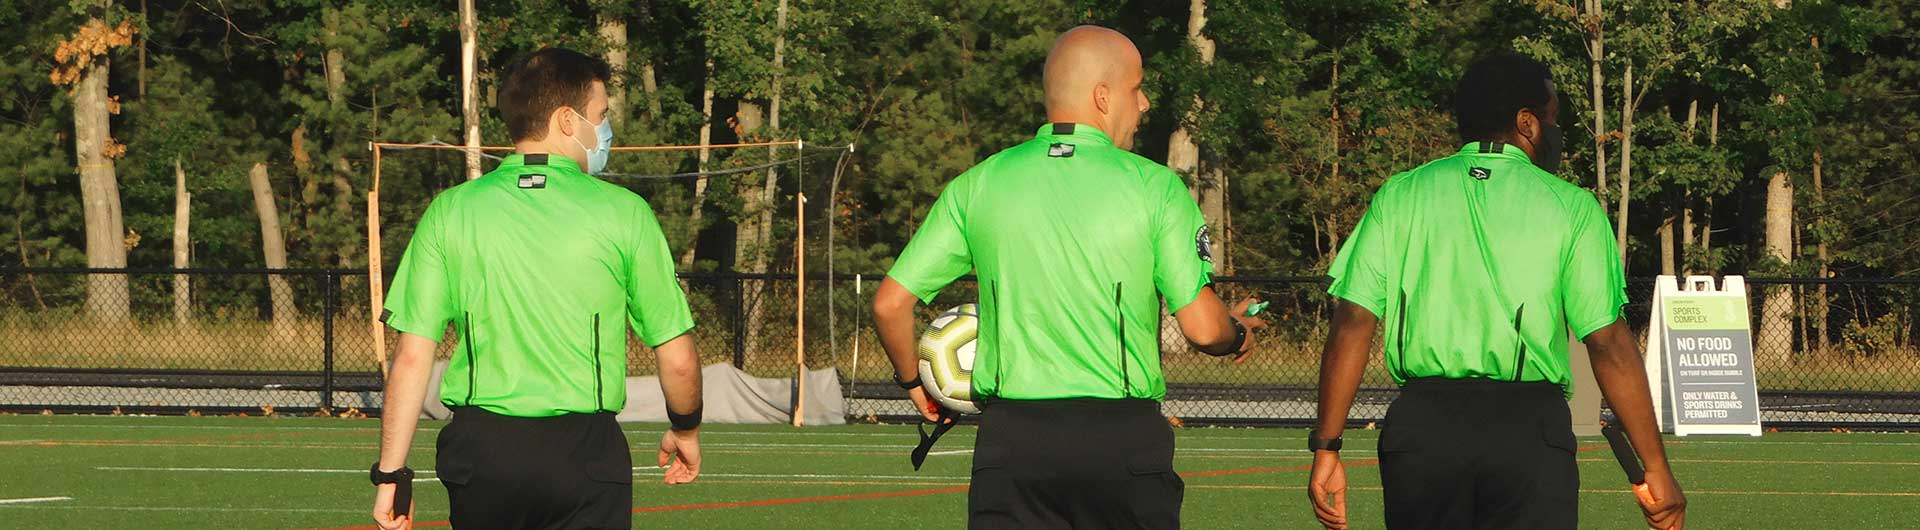 Soccer Instructor Mass State Referee